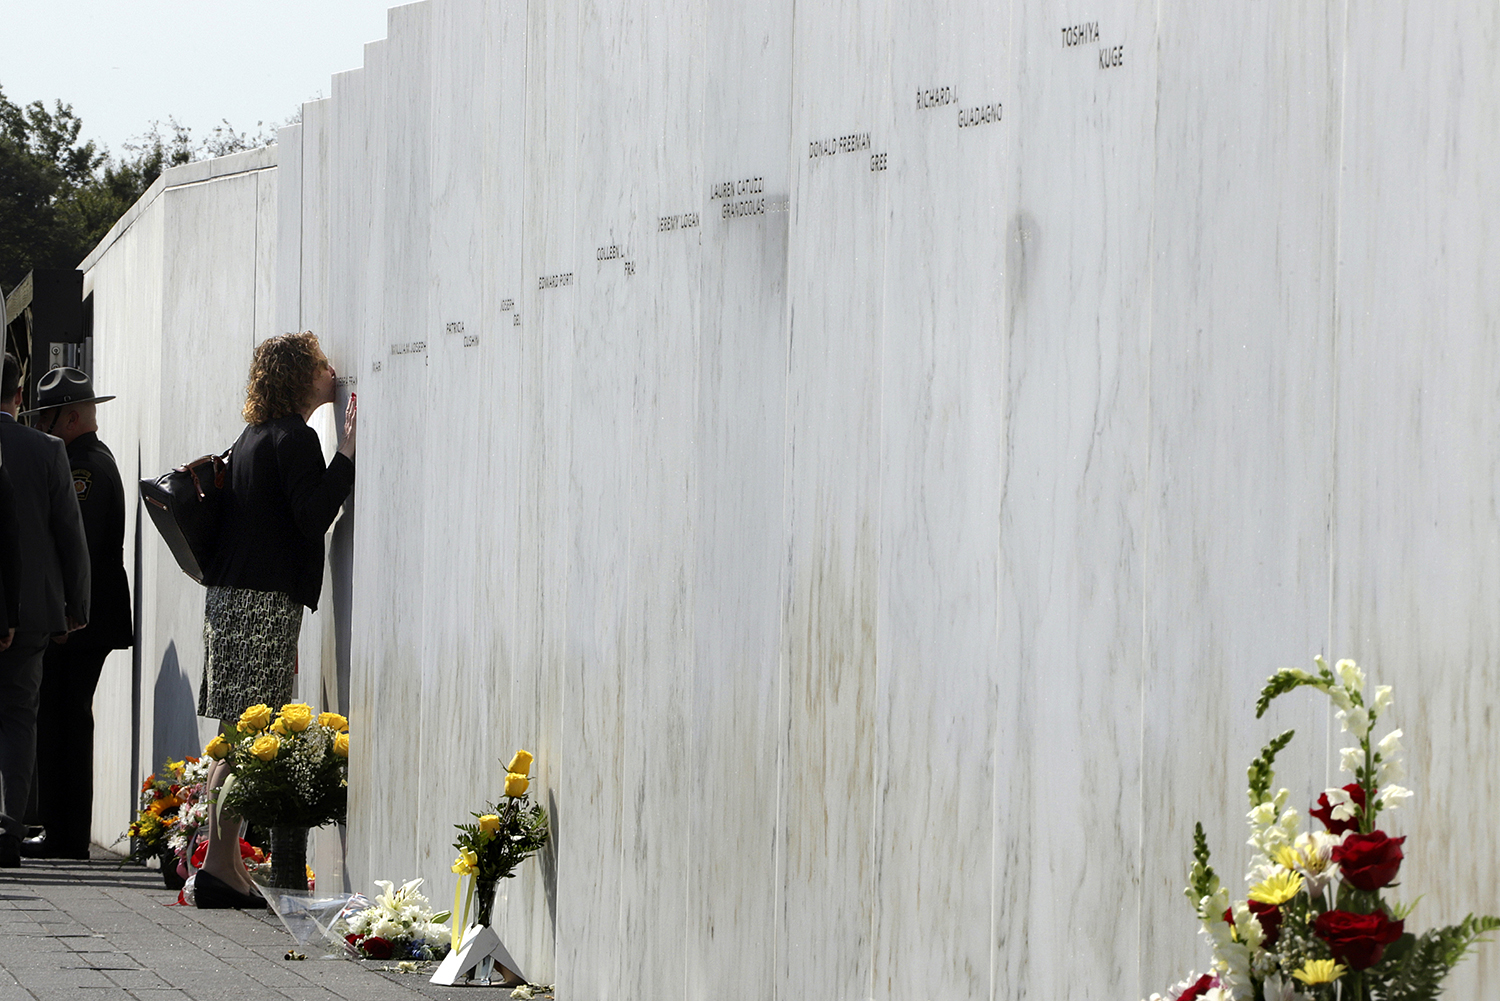 A woman pays respects at the Wall of Names at the Flight 93 National Memorial in Shanksville, Pa. after a Service of Remembrance Wednesday, Sept. 11, 2019, as the nation marks the 18th anniversary of the Sept. 11, 2001, attacks. The Wall of Names honor the 40 people killed in the crash of Flight 93. (Gene J. Puskar/AP)